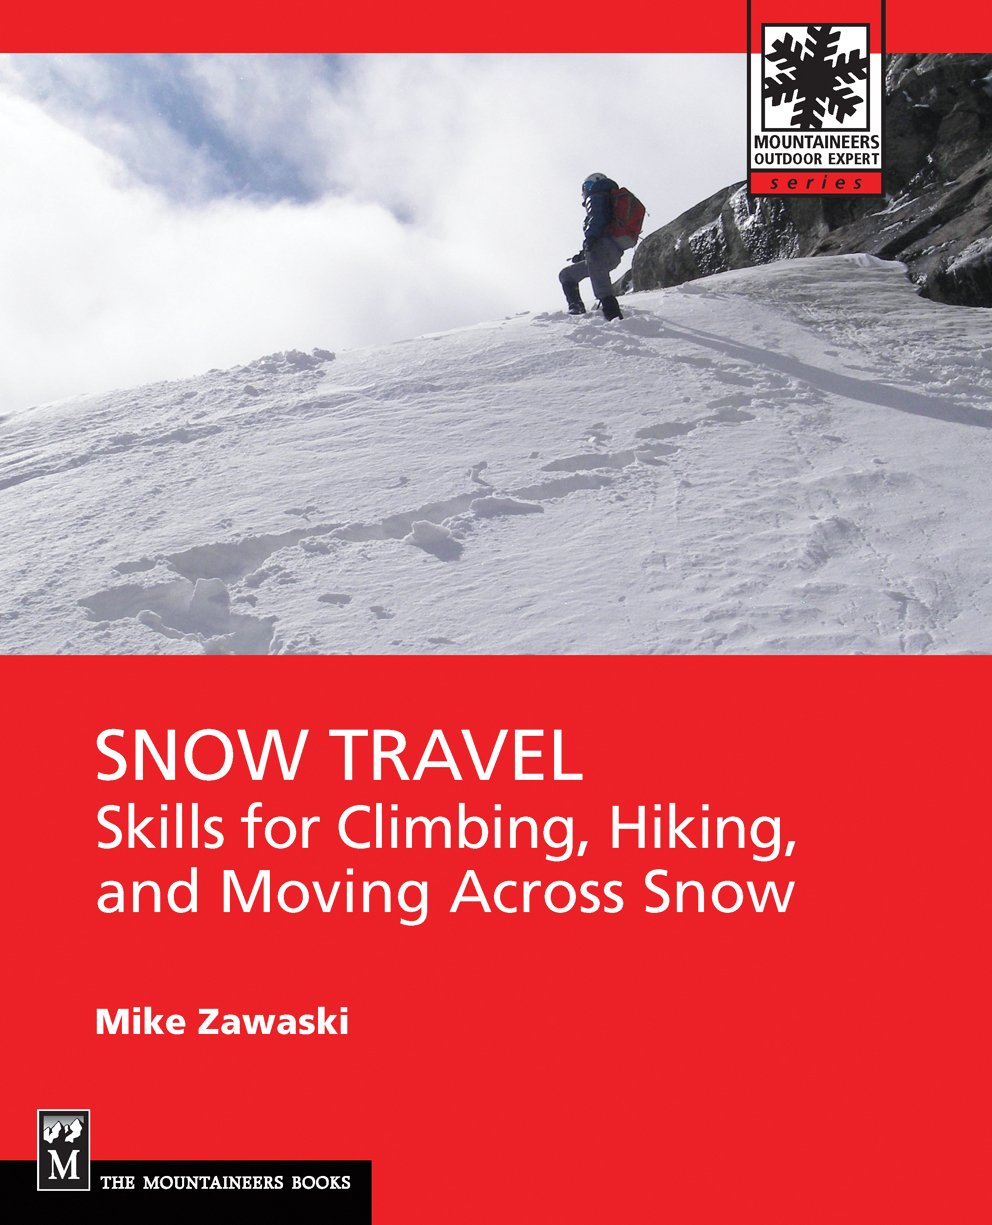 Snow Travel Climbing Mountaineers Outdoor product image